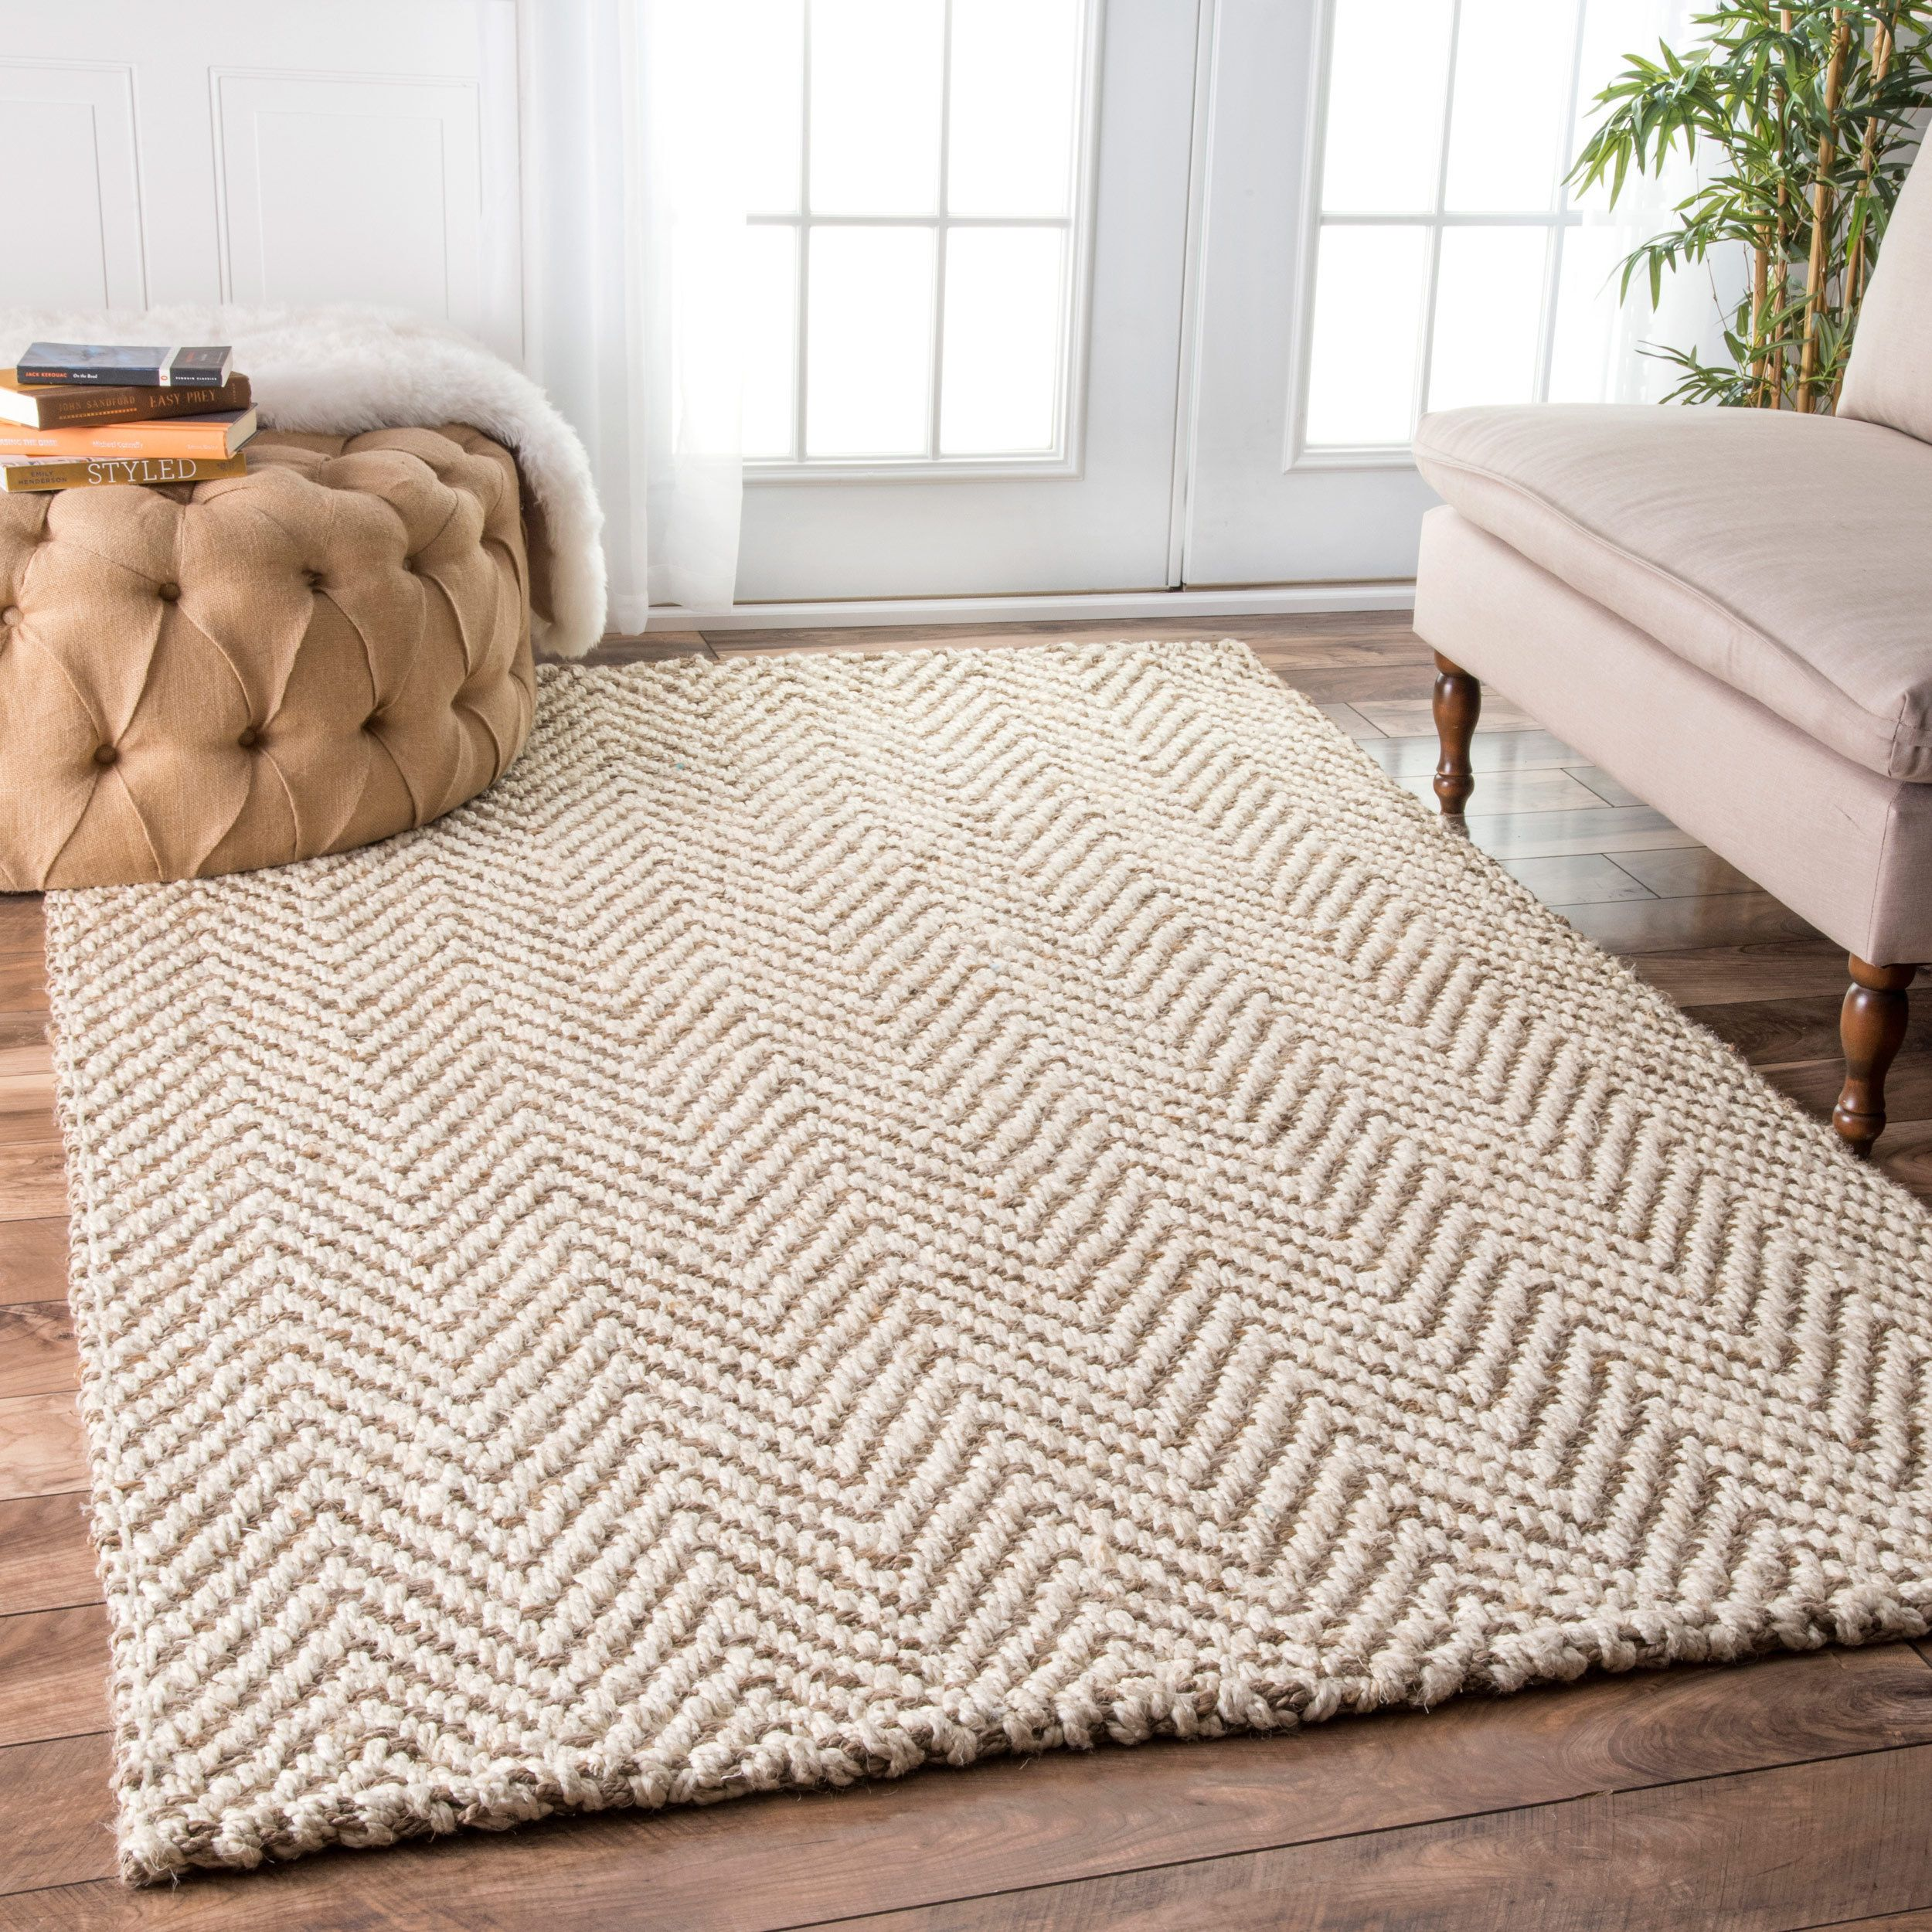 Chevron Kitchen Rug: NuLOOM Handmade Eco Natural Fiber Jute Chevron Ivory Rug